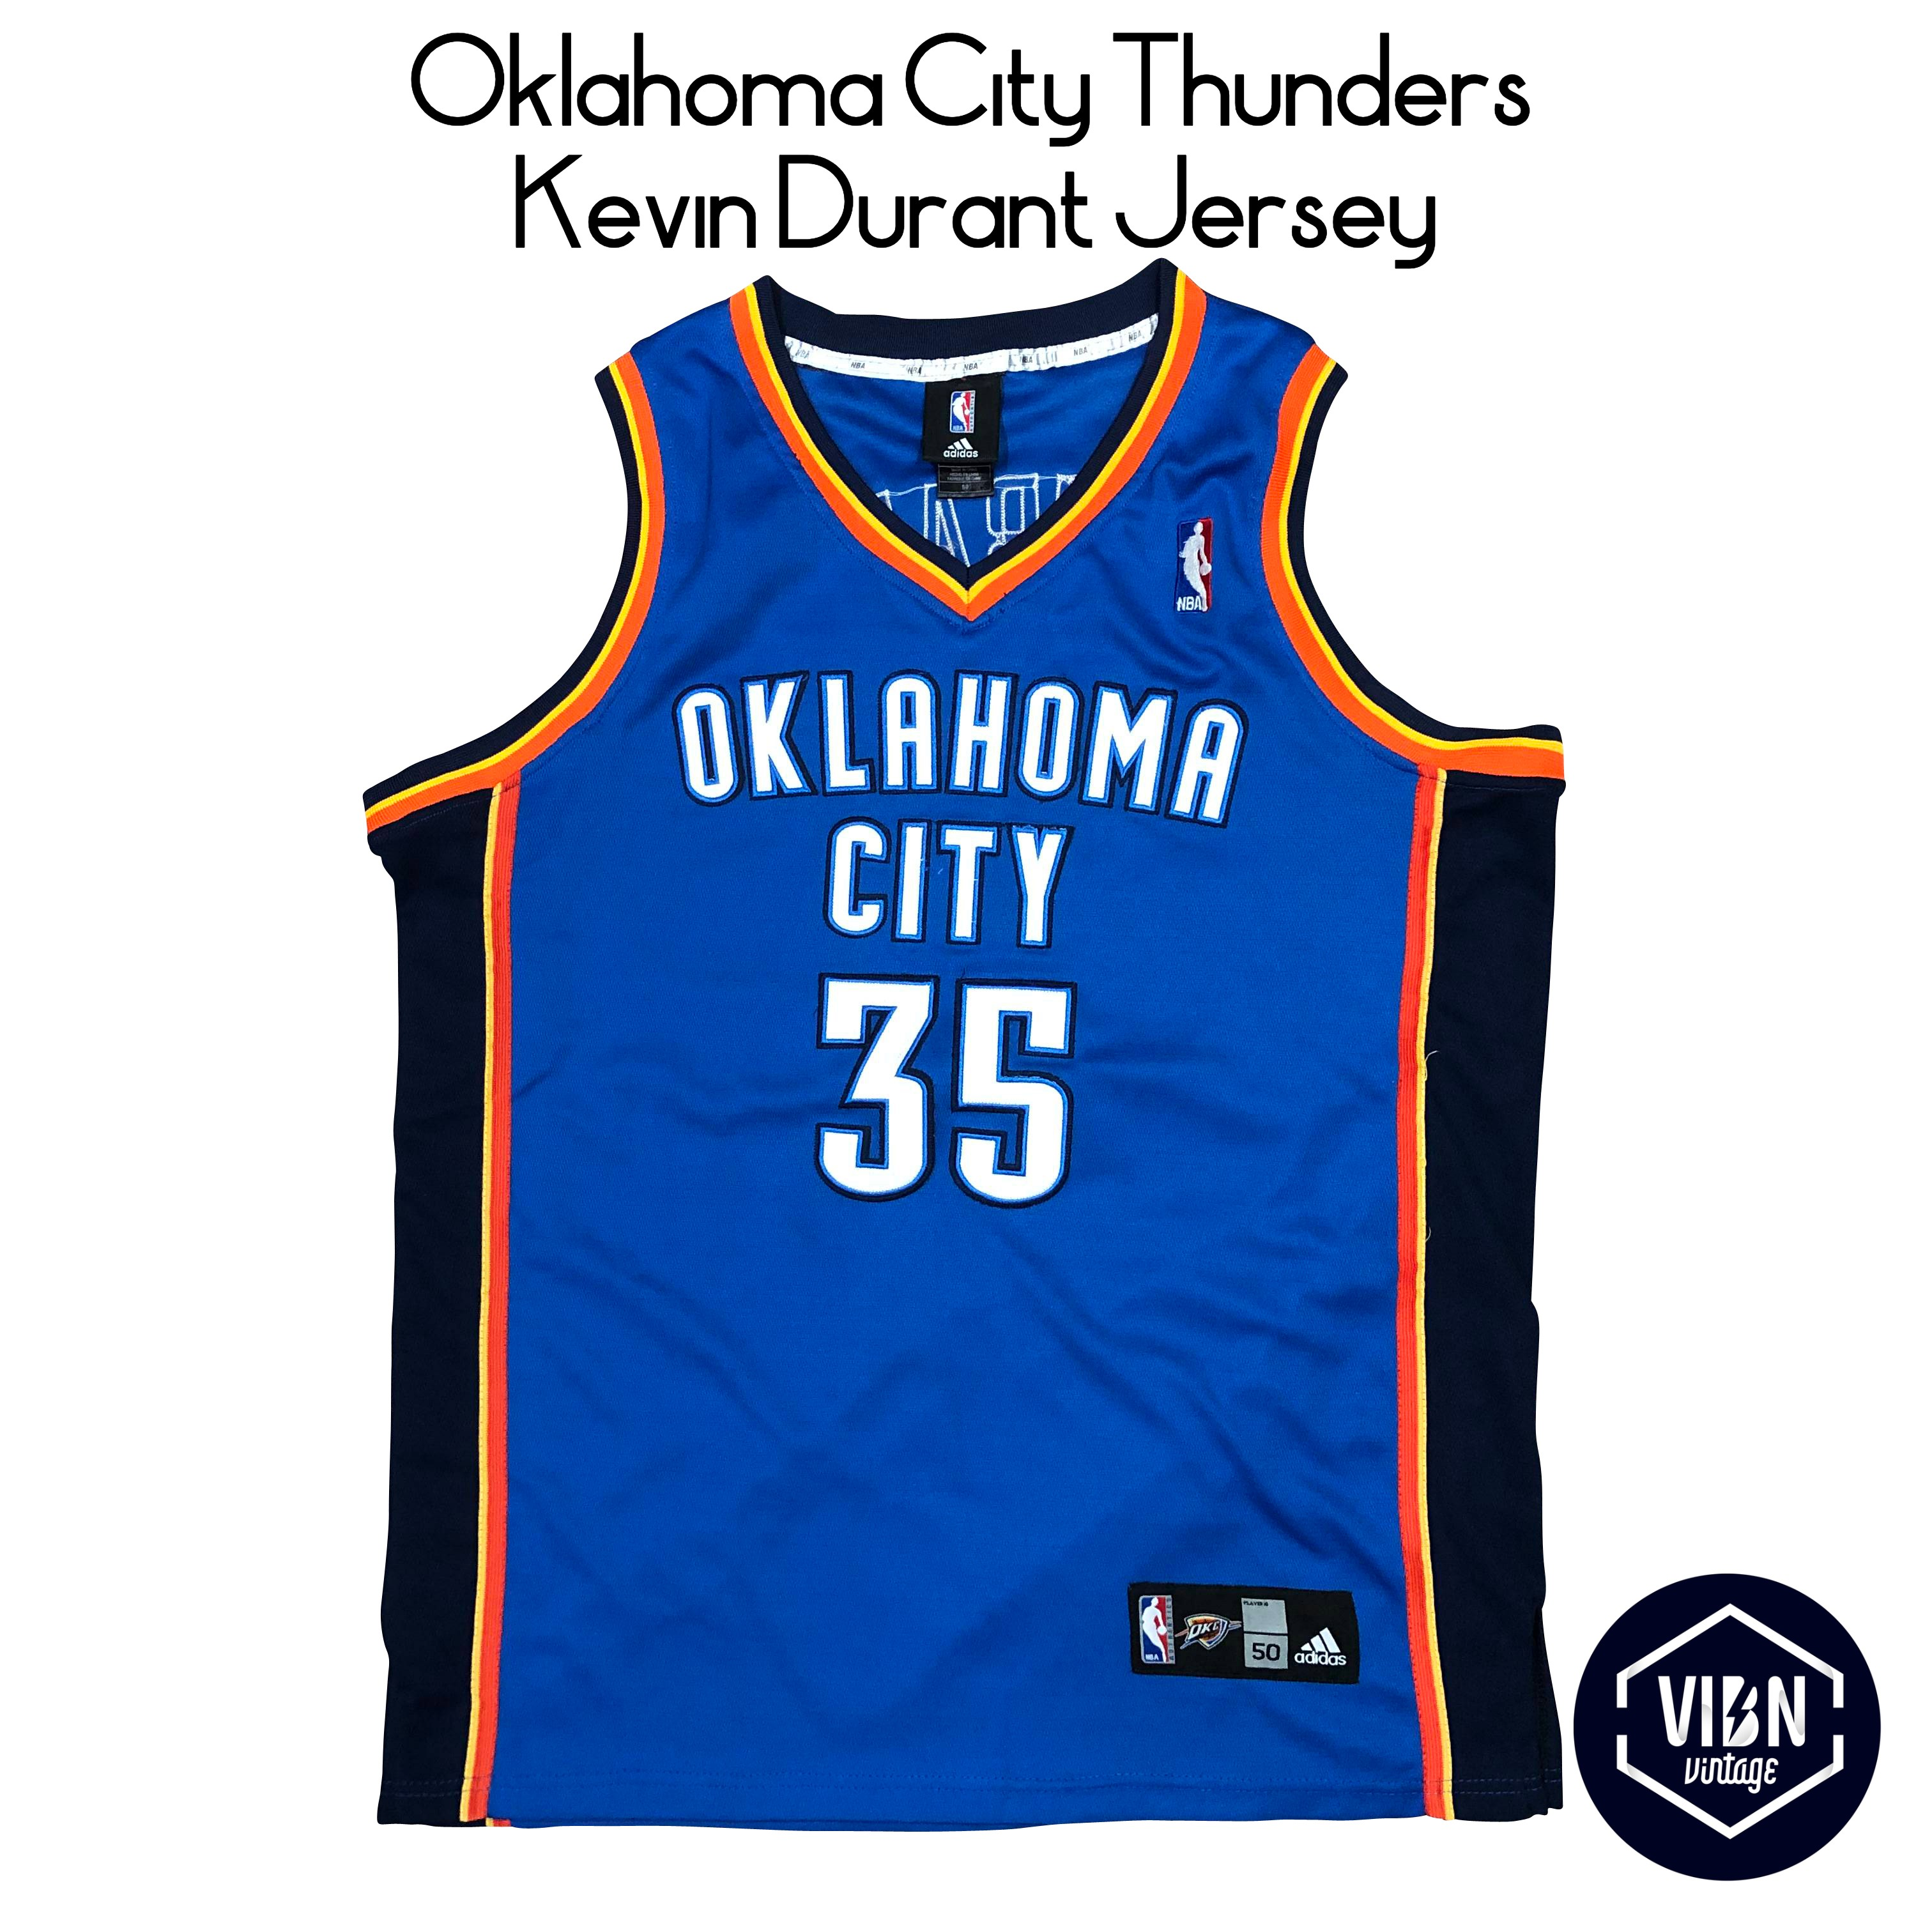 best service 7df4c cf8e8 Oklahoma City Thunders Kevin Durant Jersey